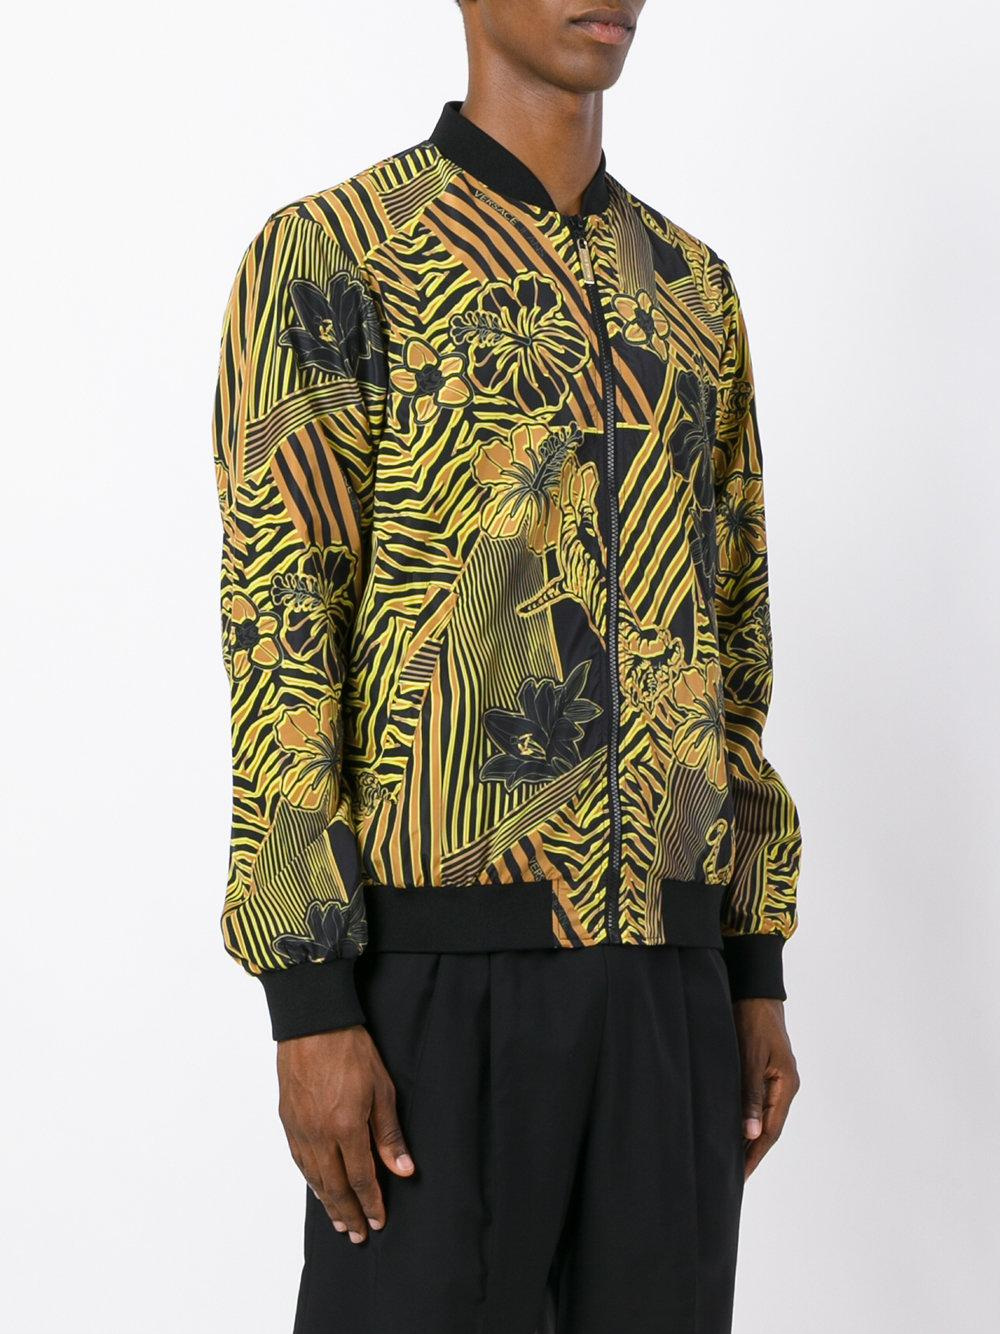 Versace Jeans Couture Synthetic Hibiscus Print Bomber Jacket in Black for Men